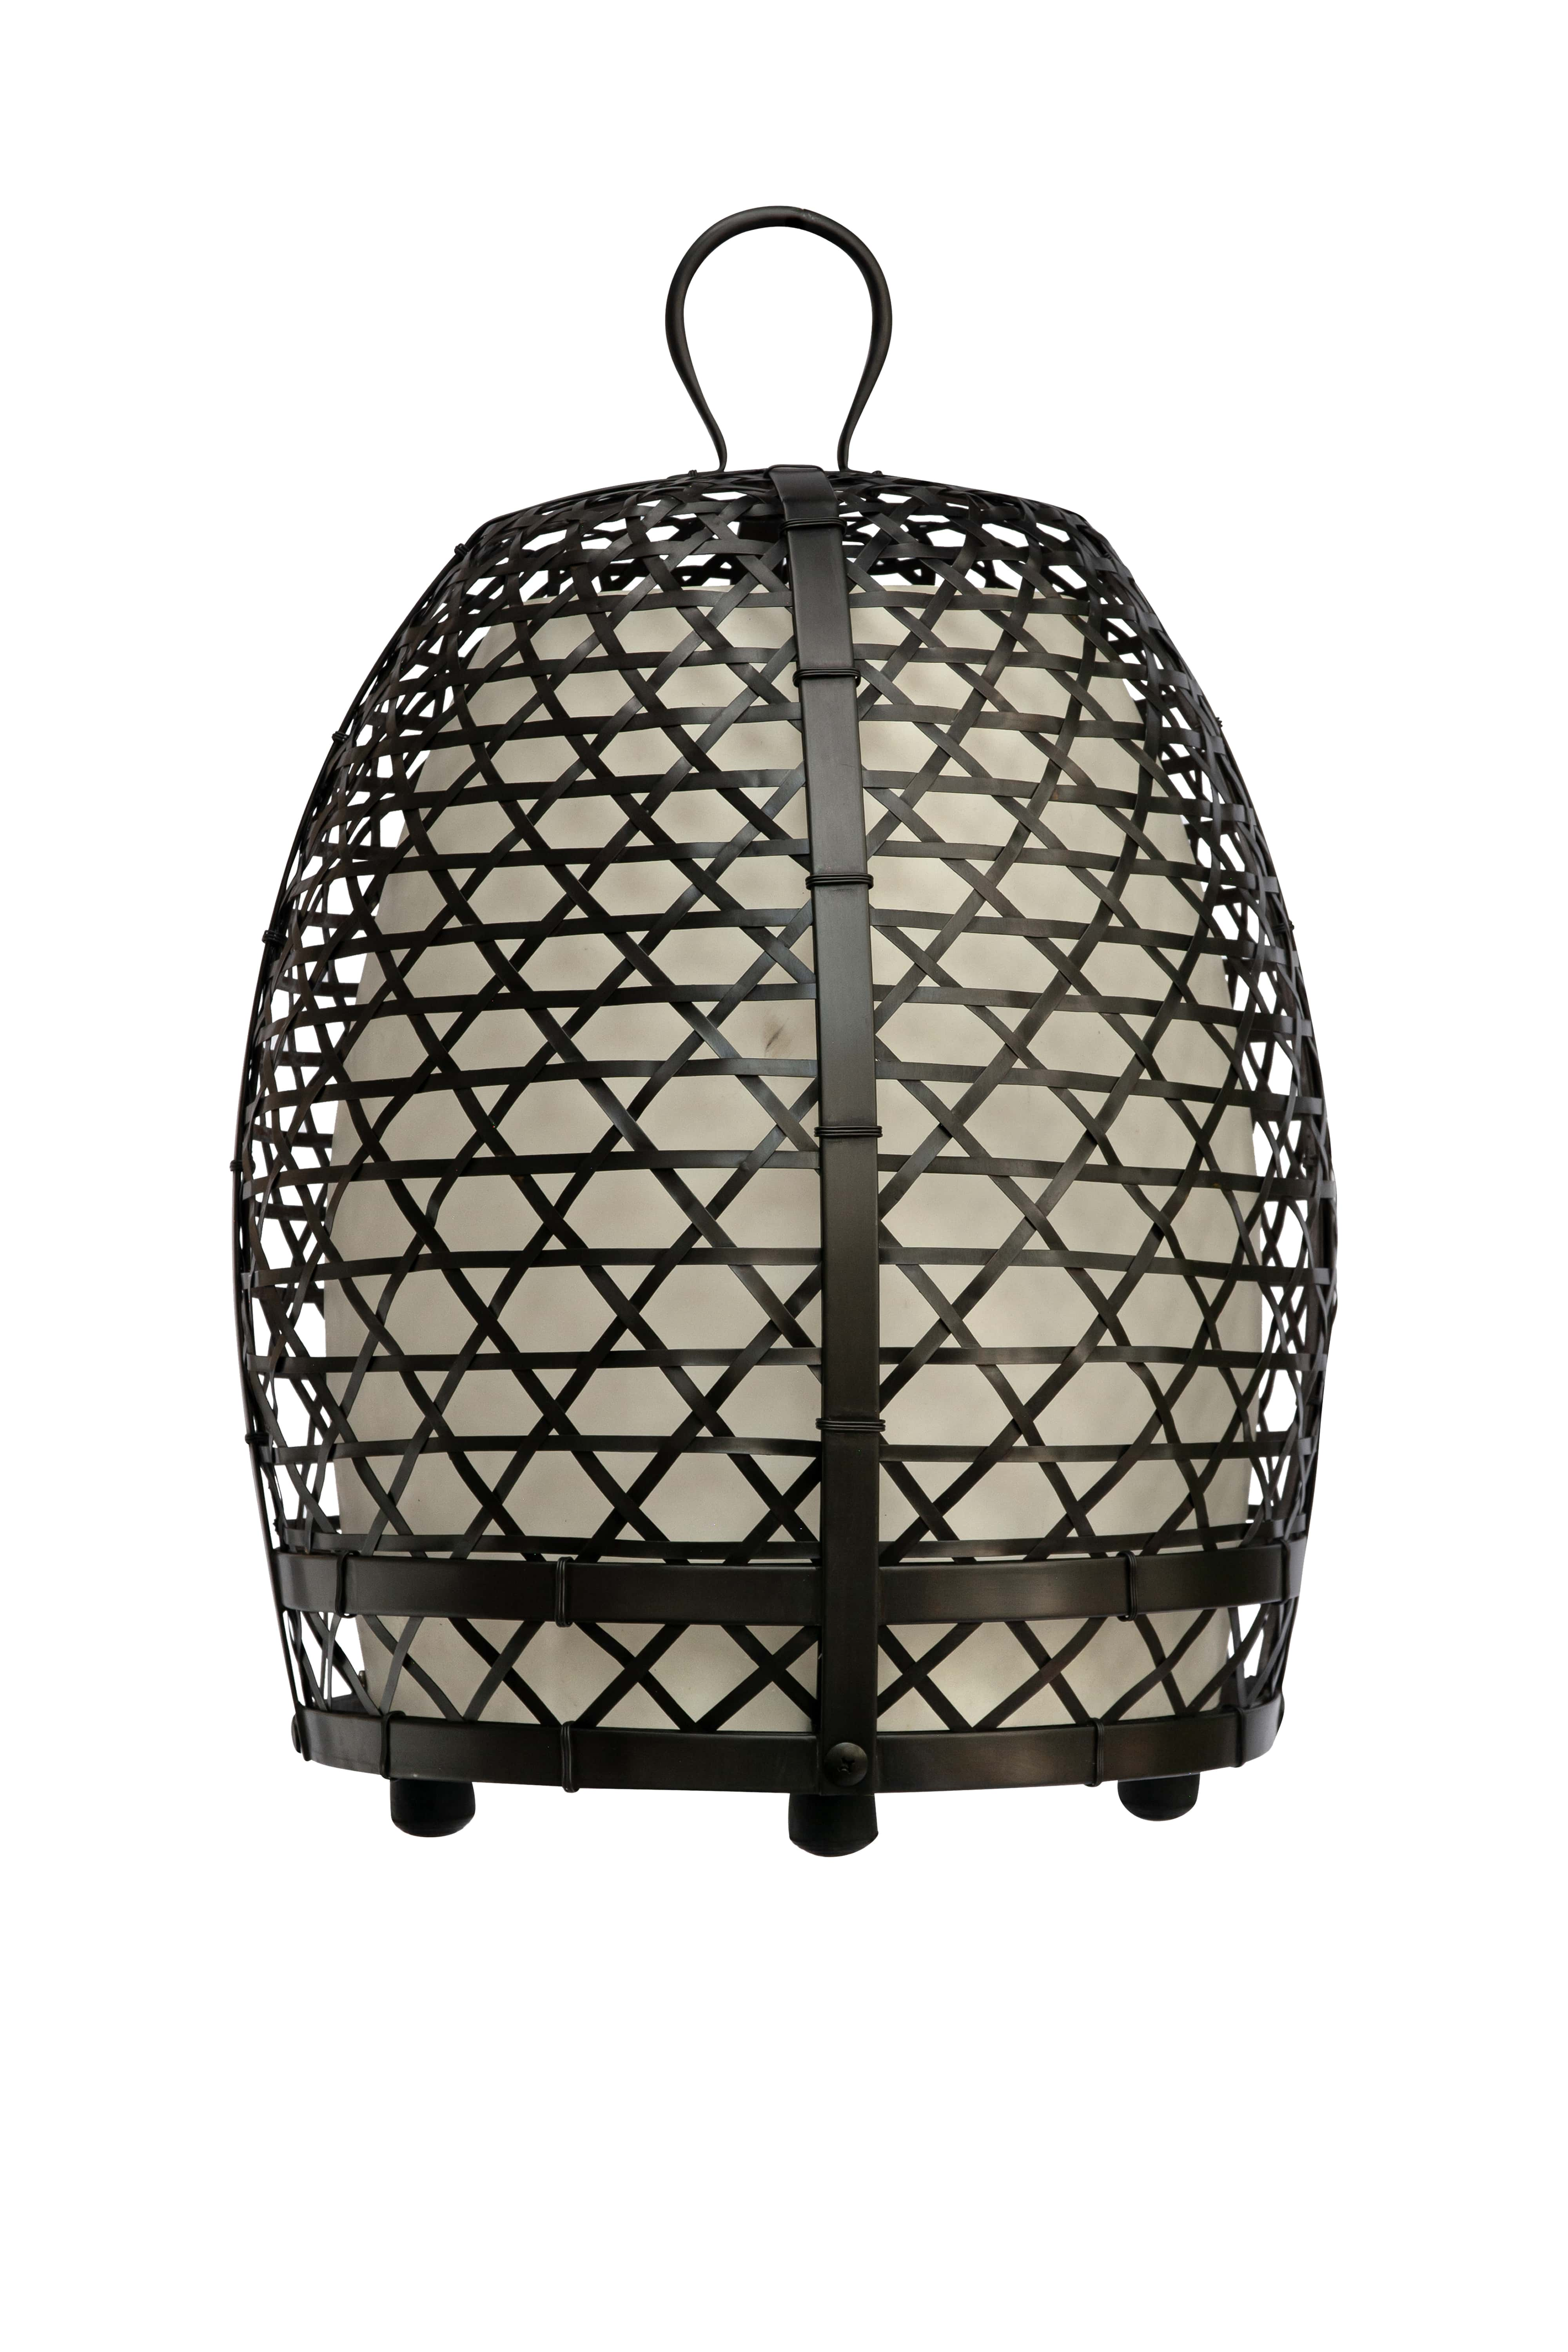 Rooster cage lamp, 77 Cm